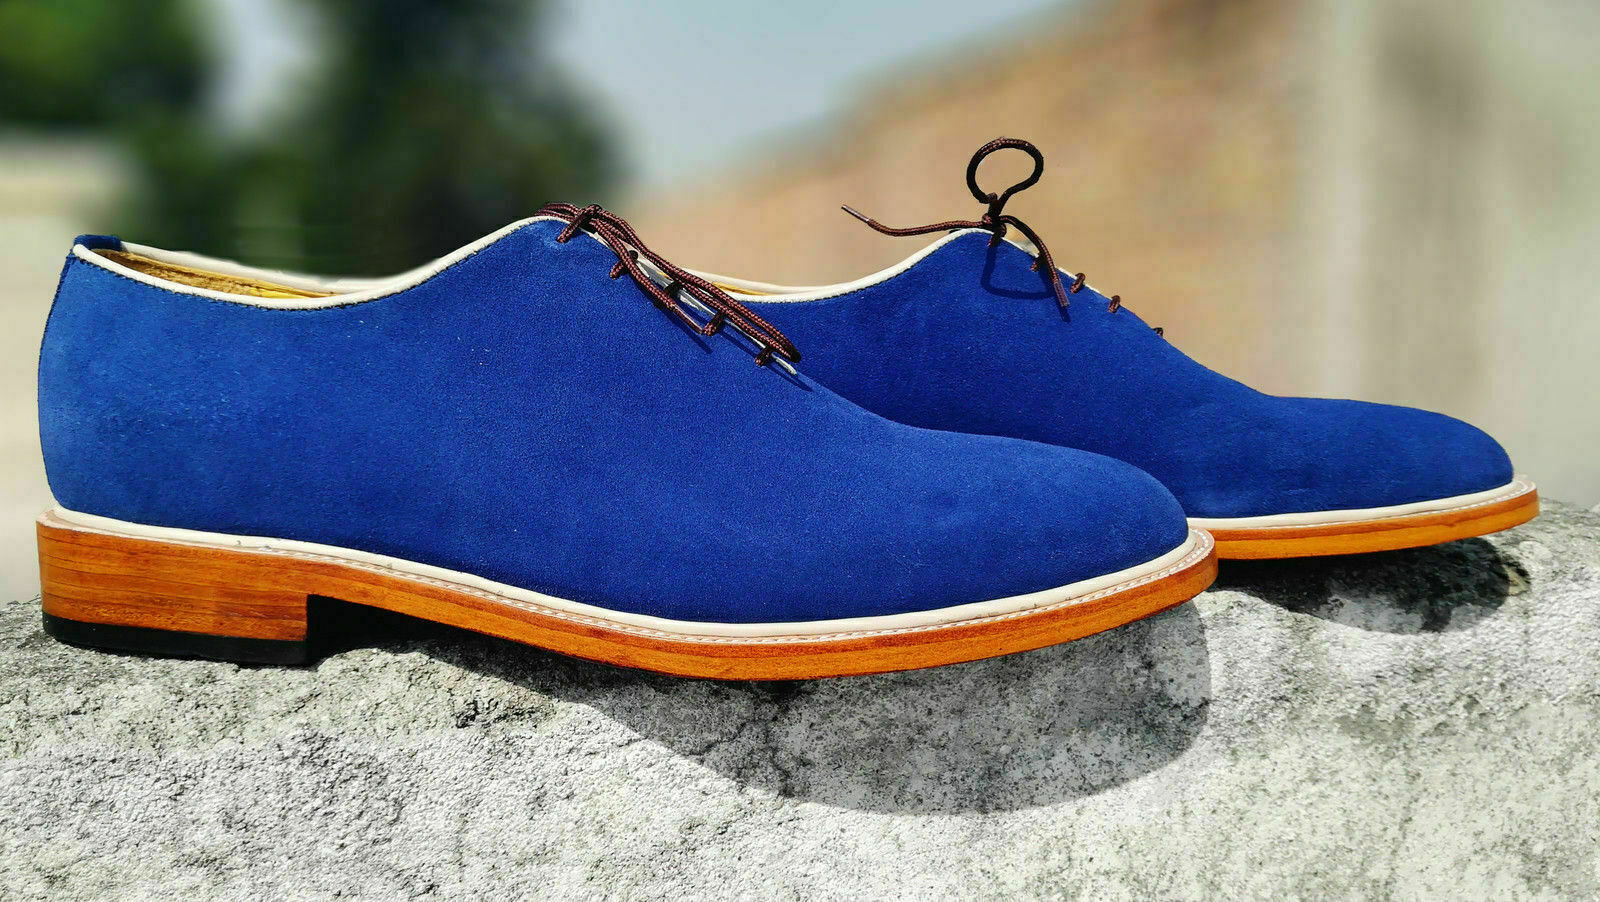 Mens Handmade schuhe Royal Blau Suede Lace Up Formal Dress Casual Wear Stiefel New